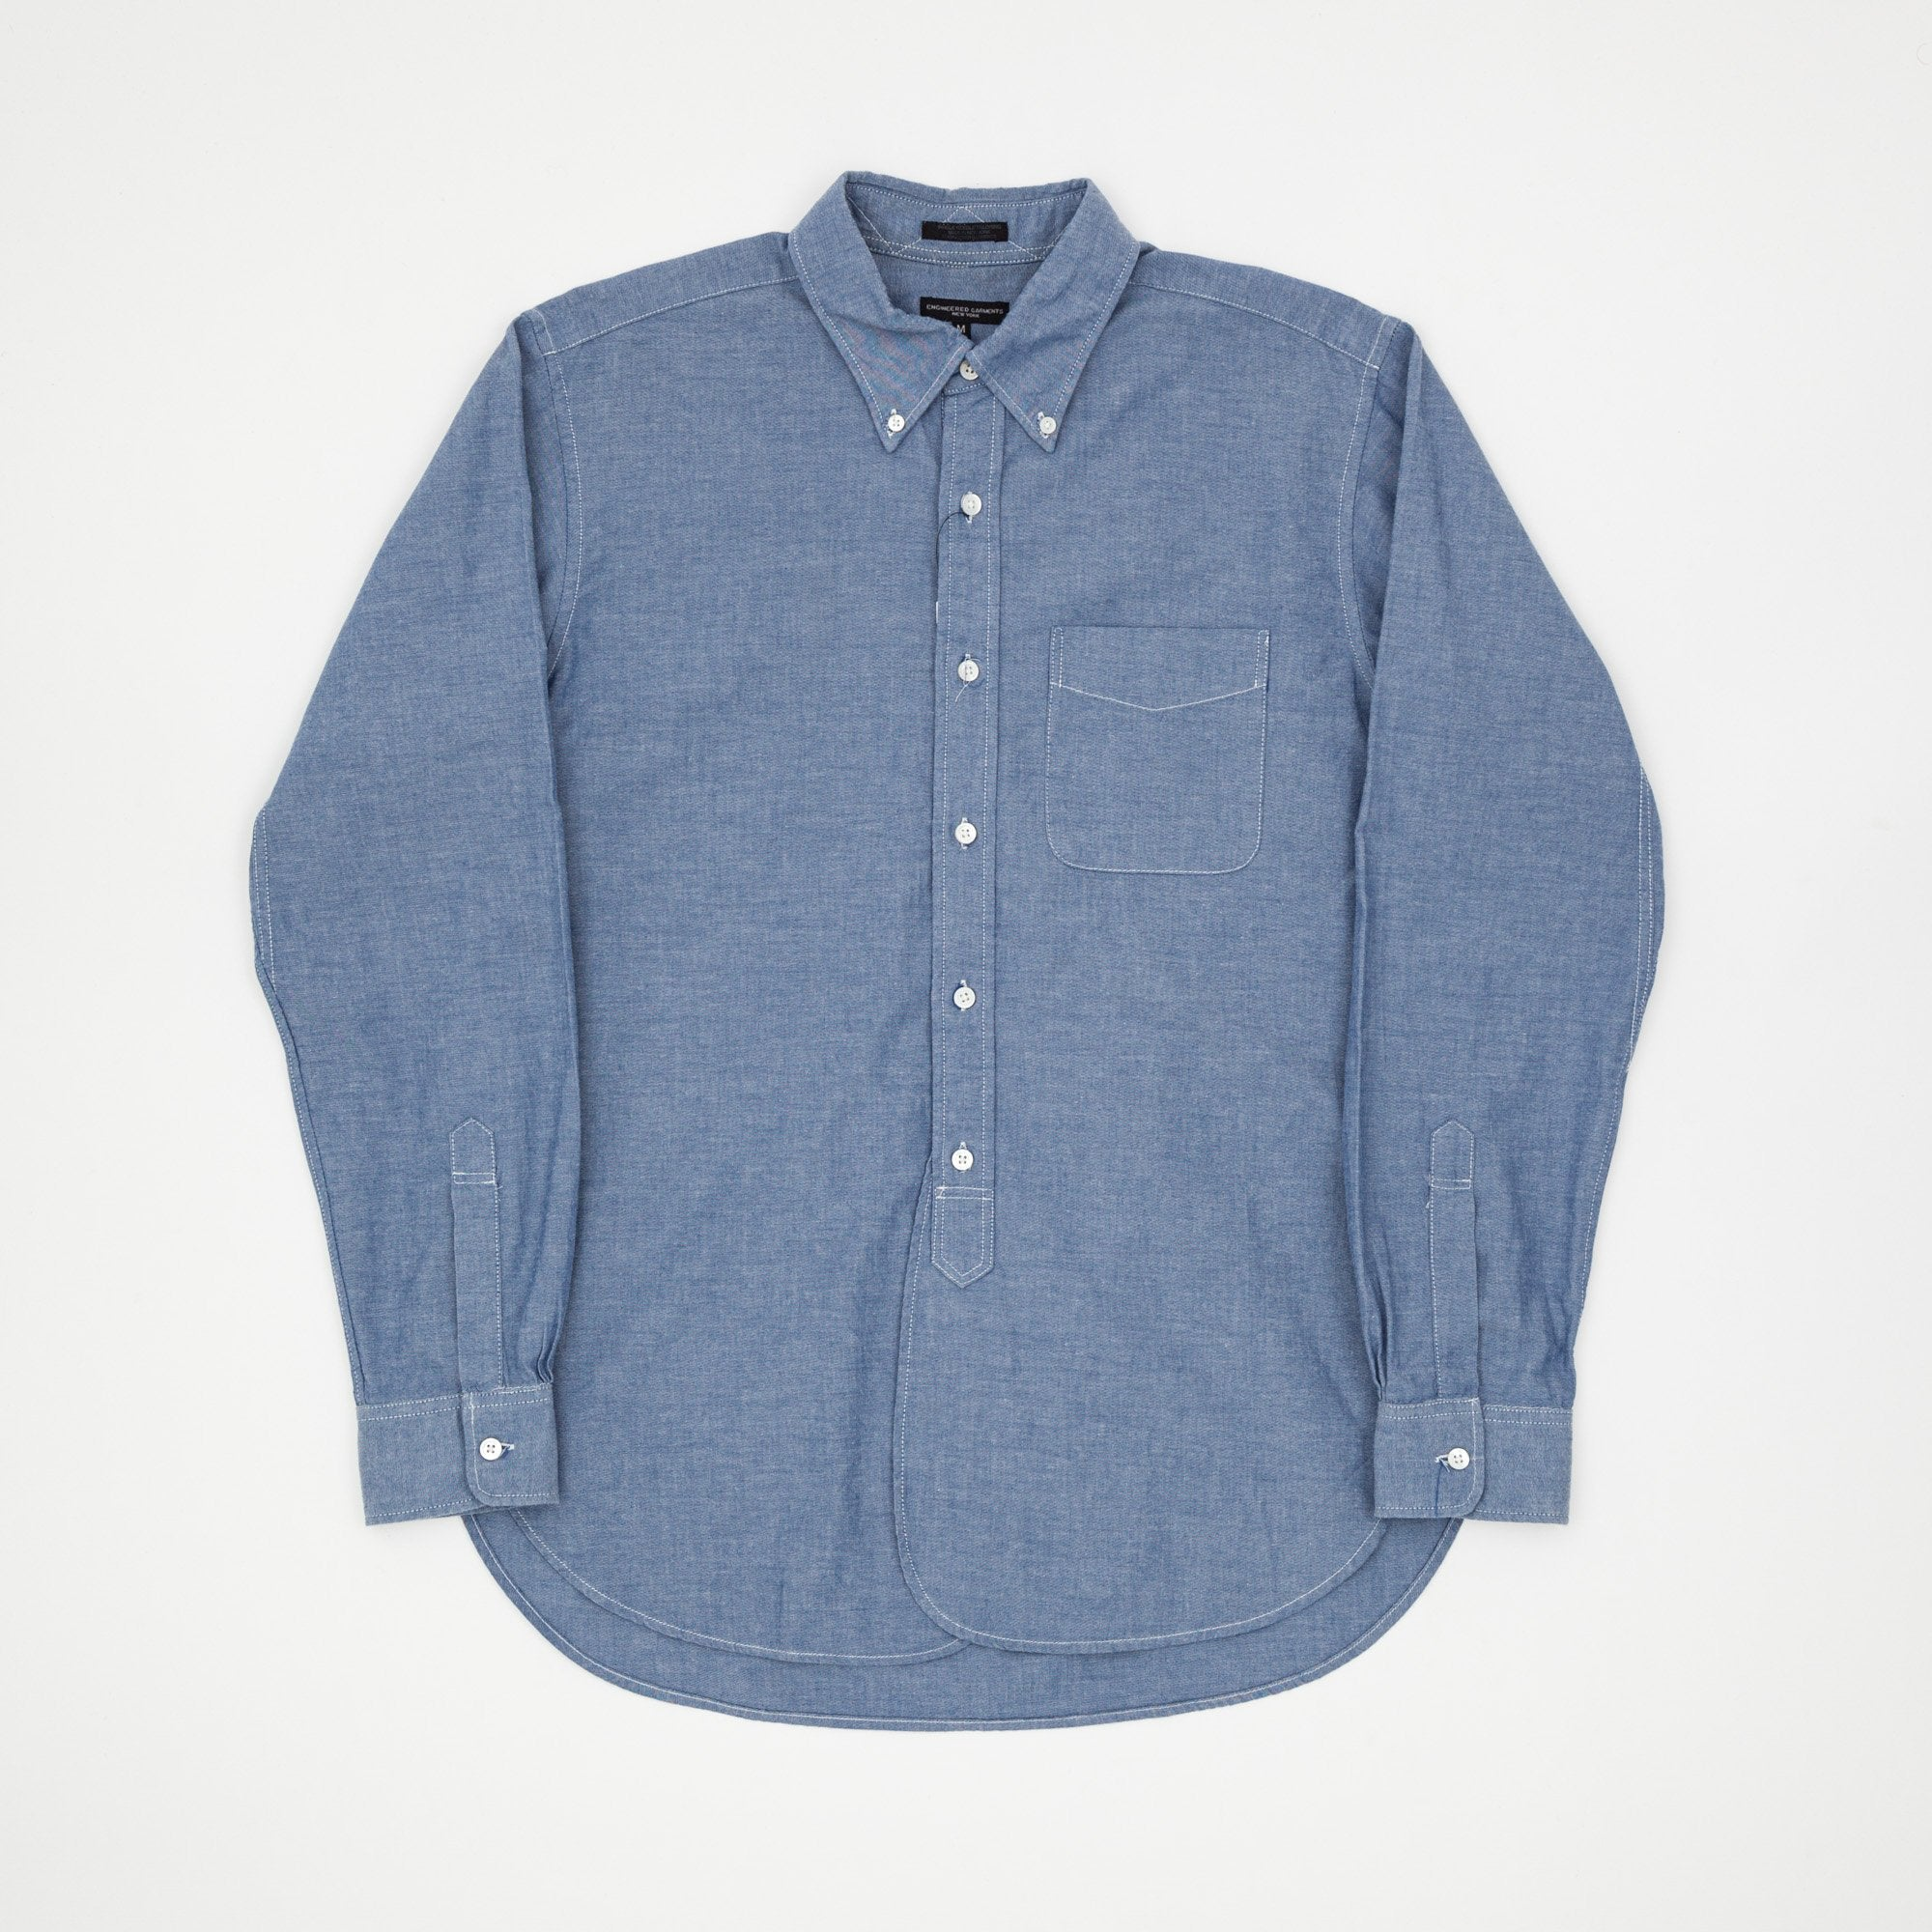 Engineered Garments Dress Chambray Work Shirt